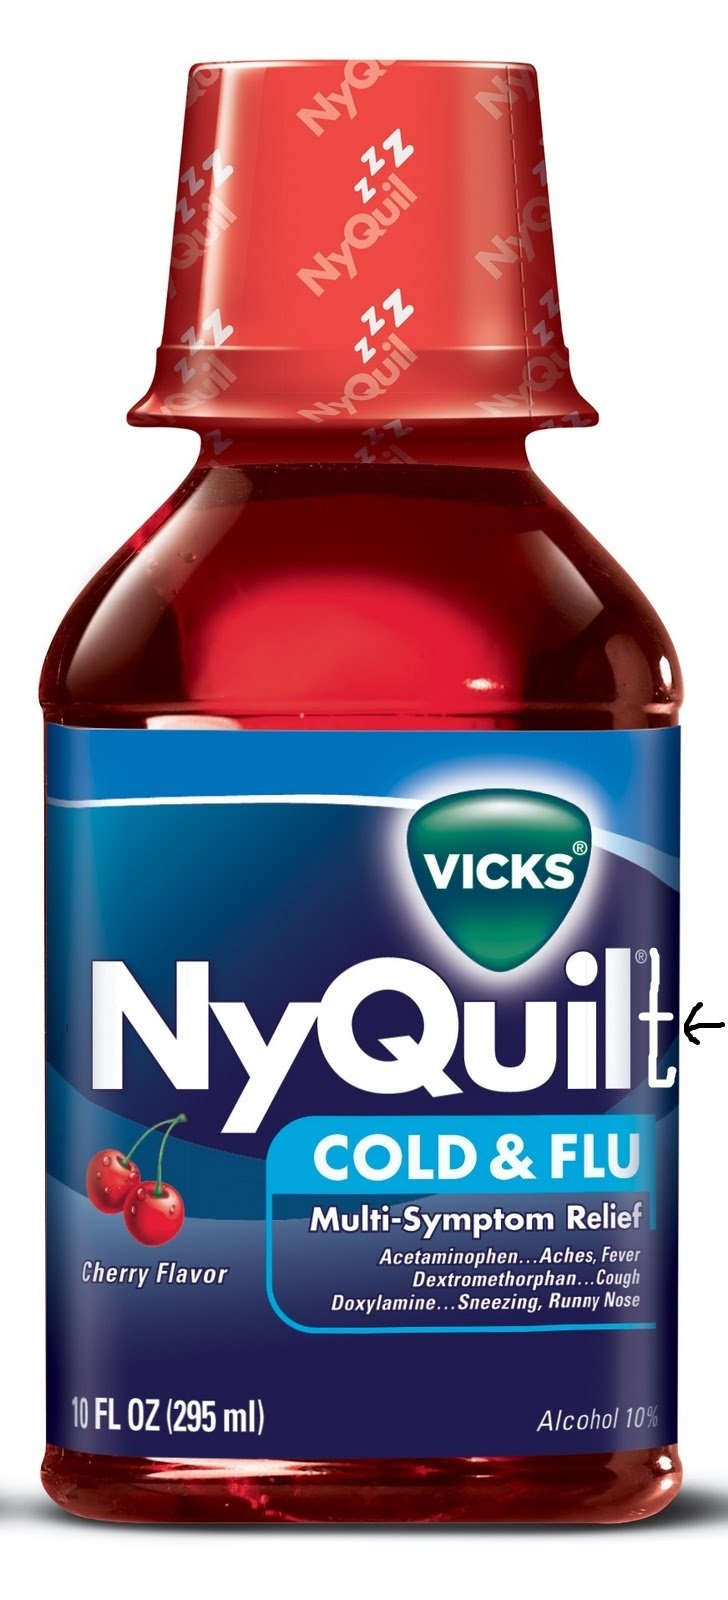 Nyquil Meme OC. One of my more complex memes. Your average bottle of NyQuil does NOT end with a T. Was this specific bottle not content without having a T? Did